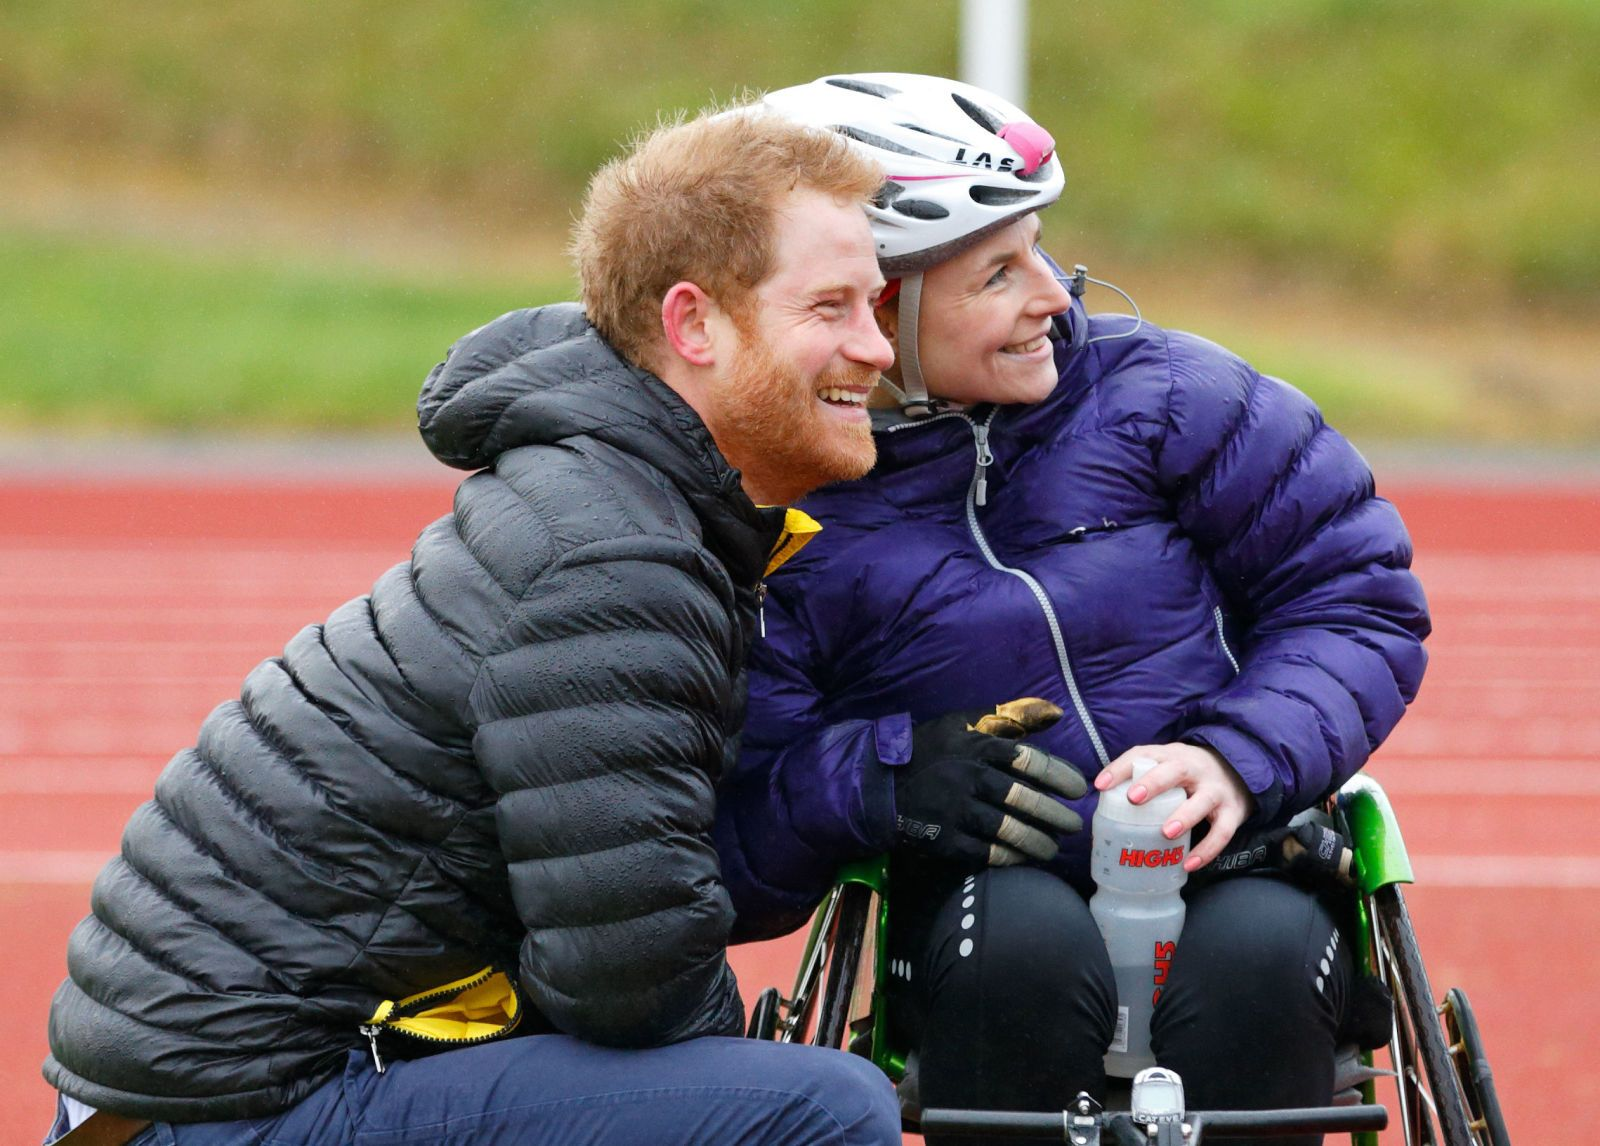 Prince Harry Rescues Woman In Wheelchair, Proves Hes a Real-Life Prince Charming